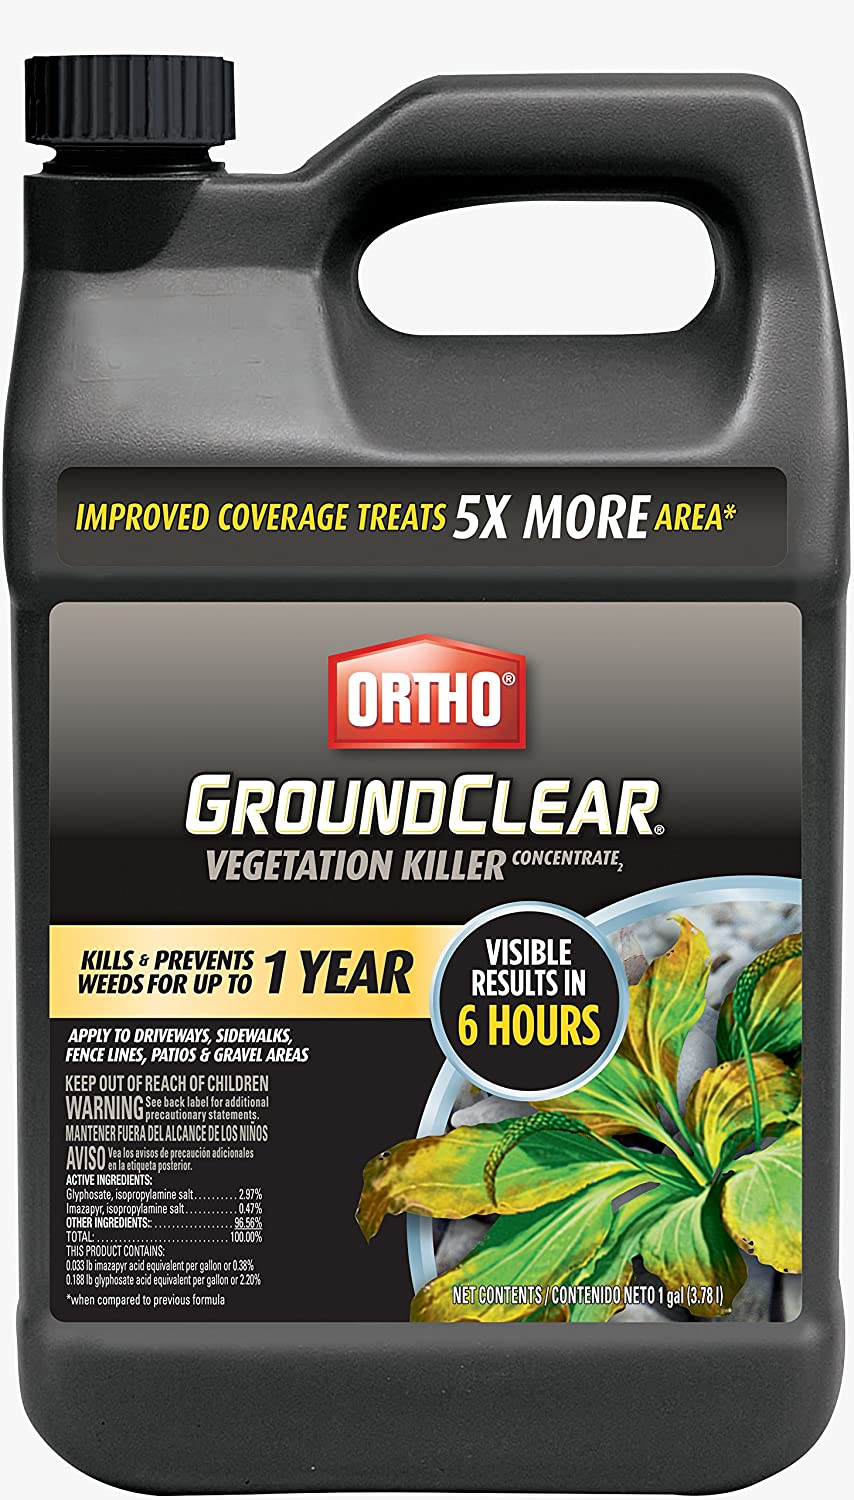 What to Know When Picking Vegetation Killer